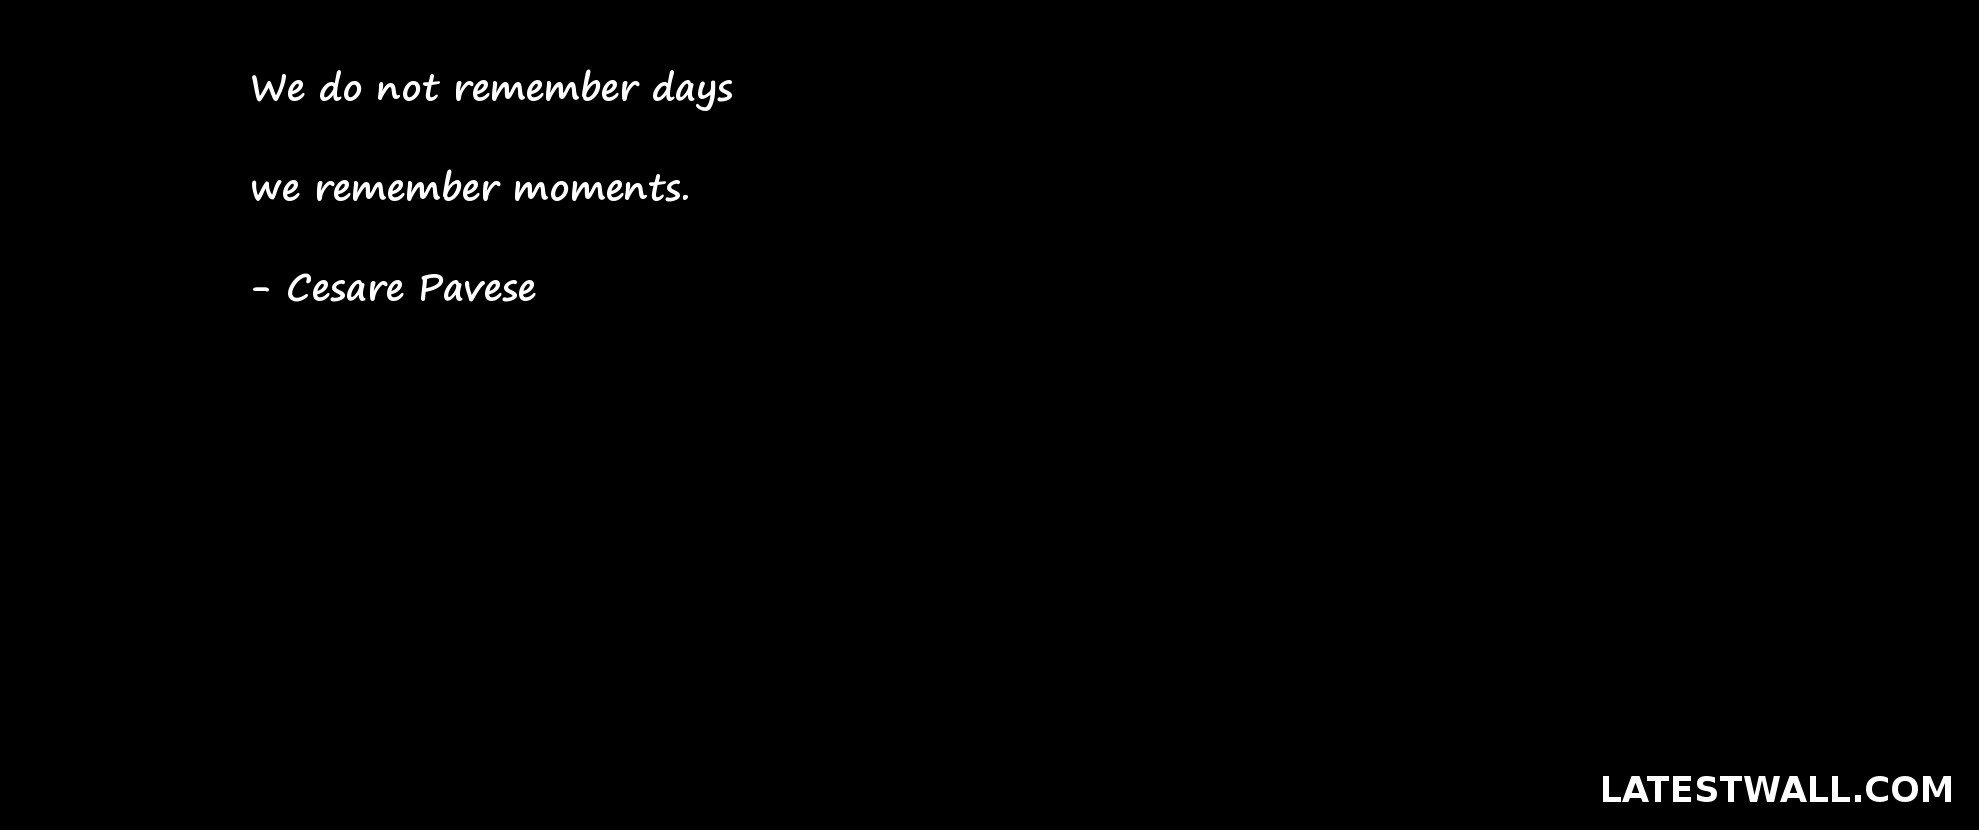 We do not remember days